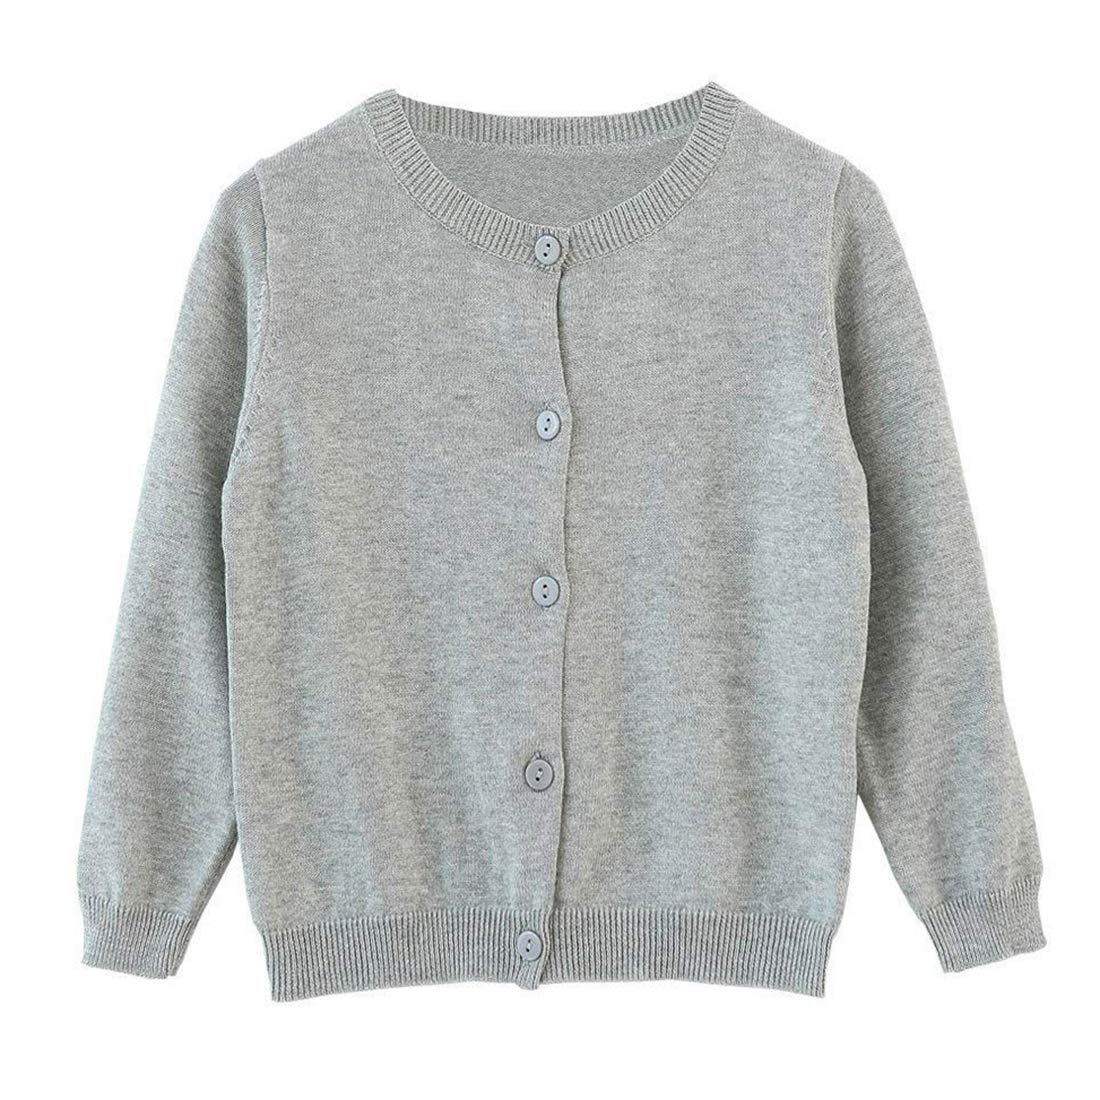 4bcbca16a196 Amazon.com  Dutebare Baby Girls Long Sleeve Cardigans Toddler ...